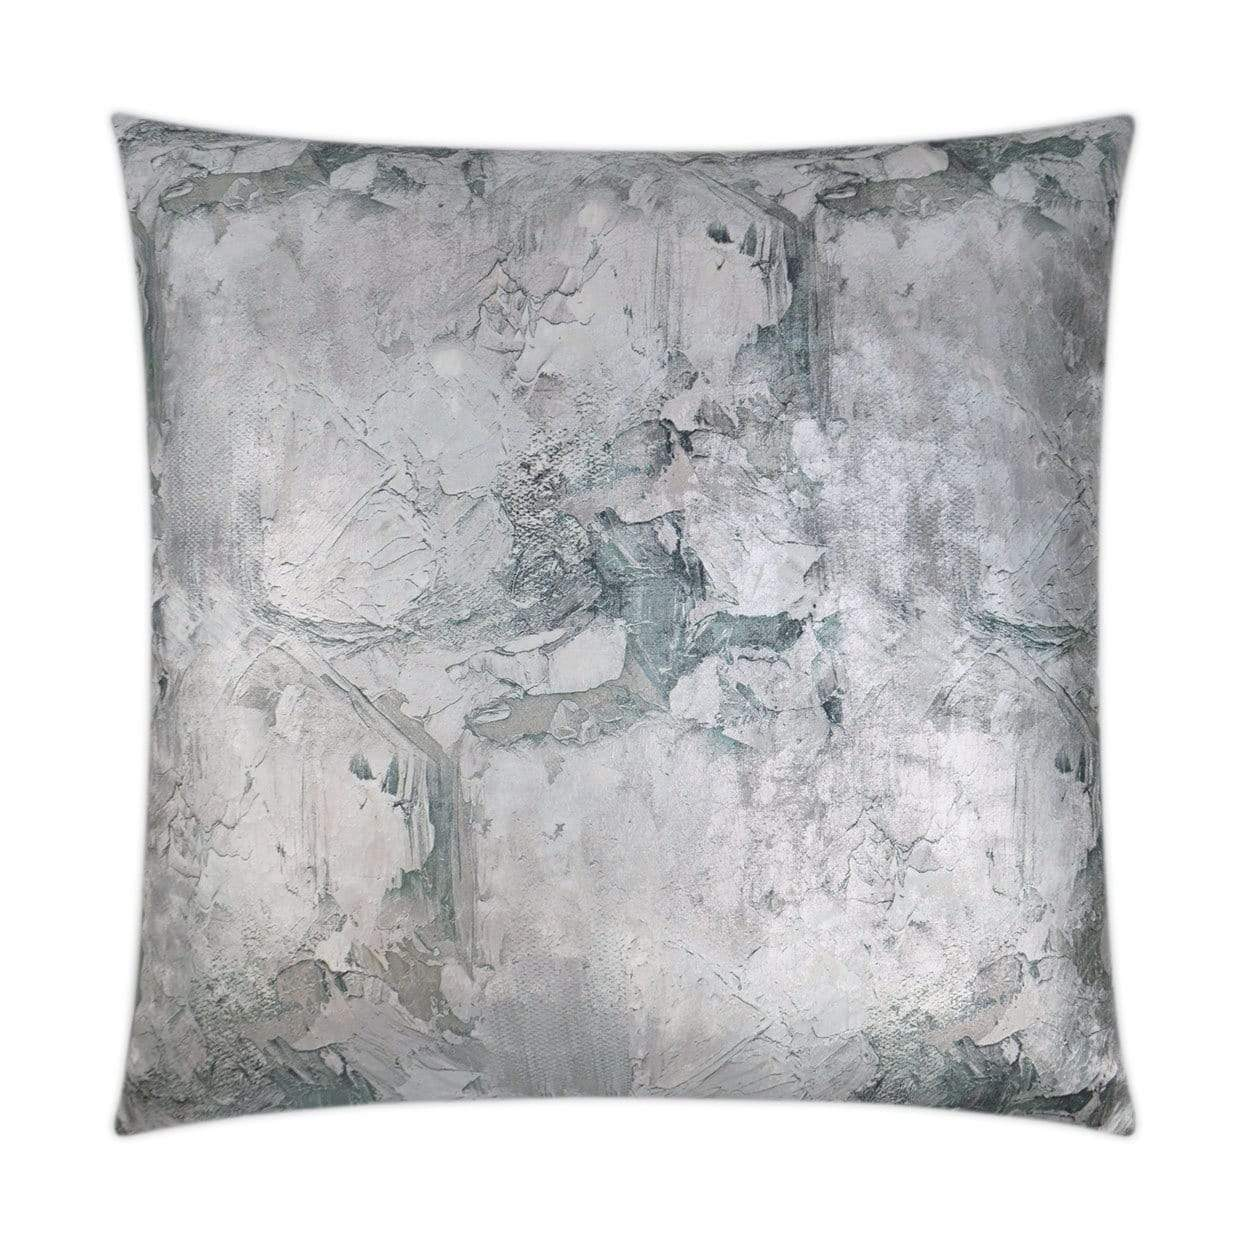 D.V. Kap D.V. Kap Untamed Chic Pillow - Available in 2 Colors Glacier 3156-G